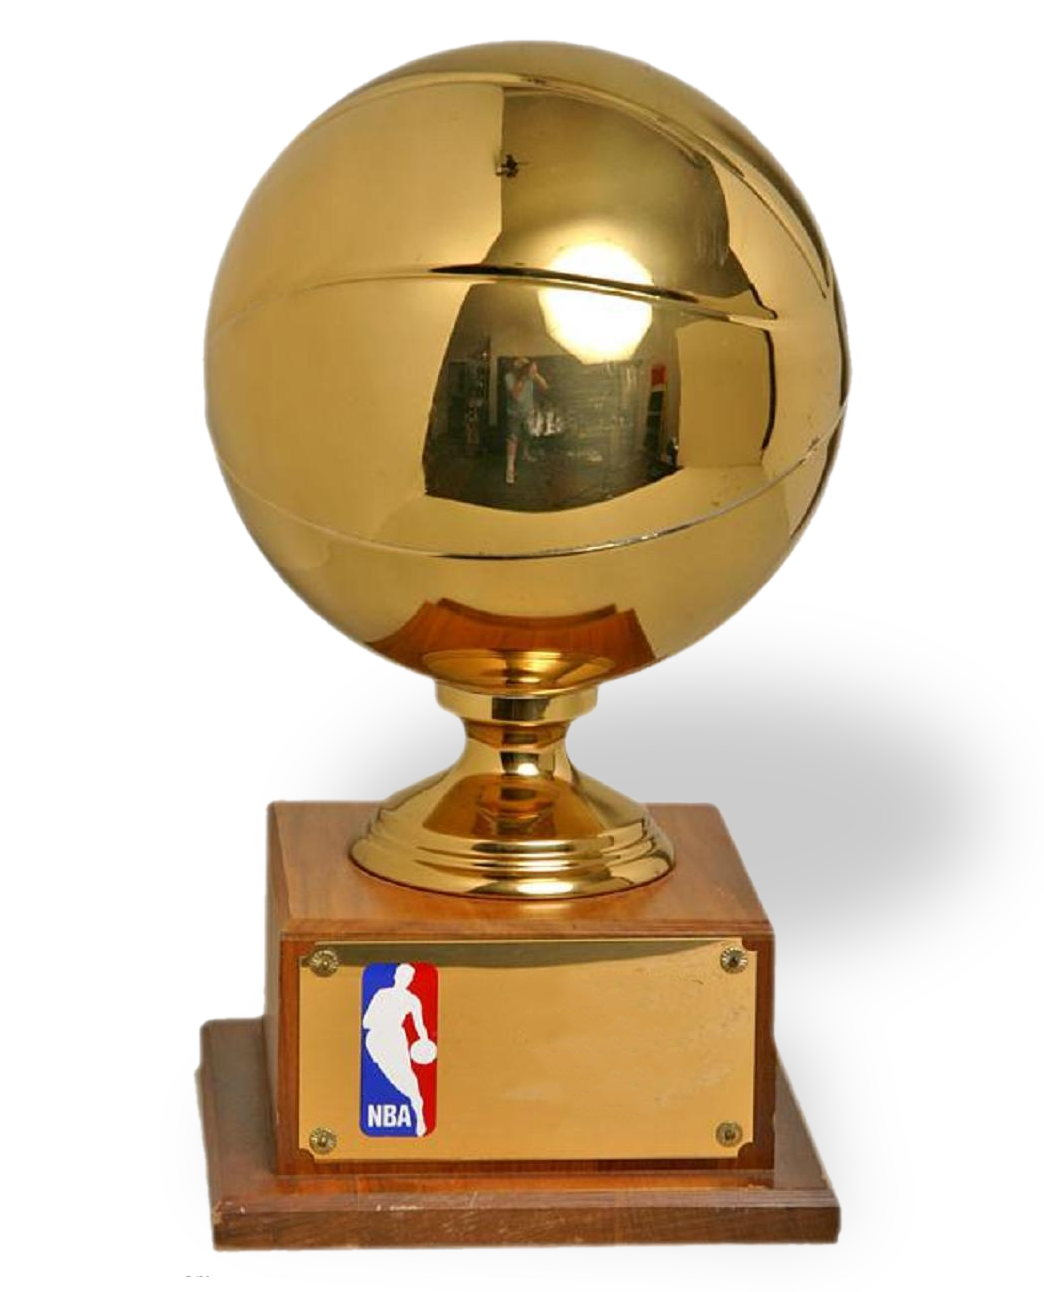 Nba finals trophy png. The oklahoma city thunder